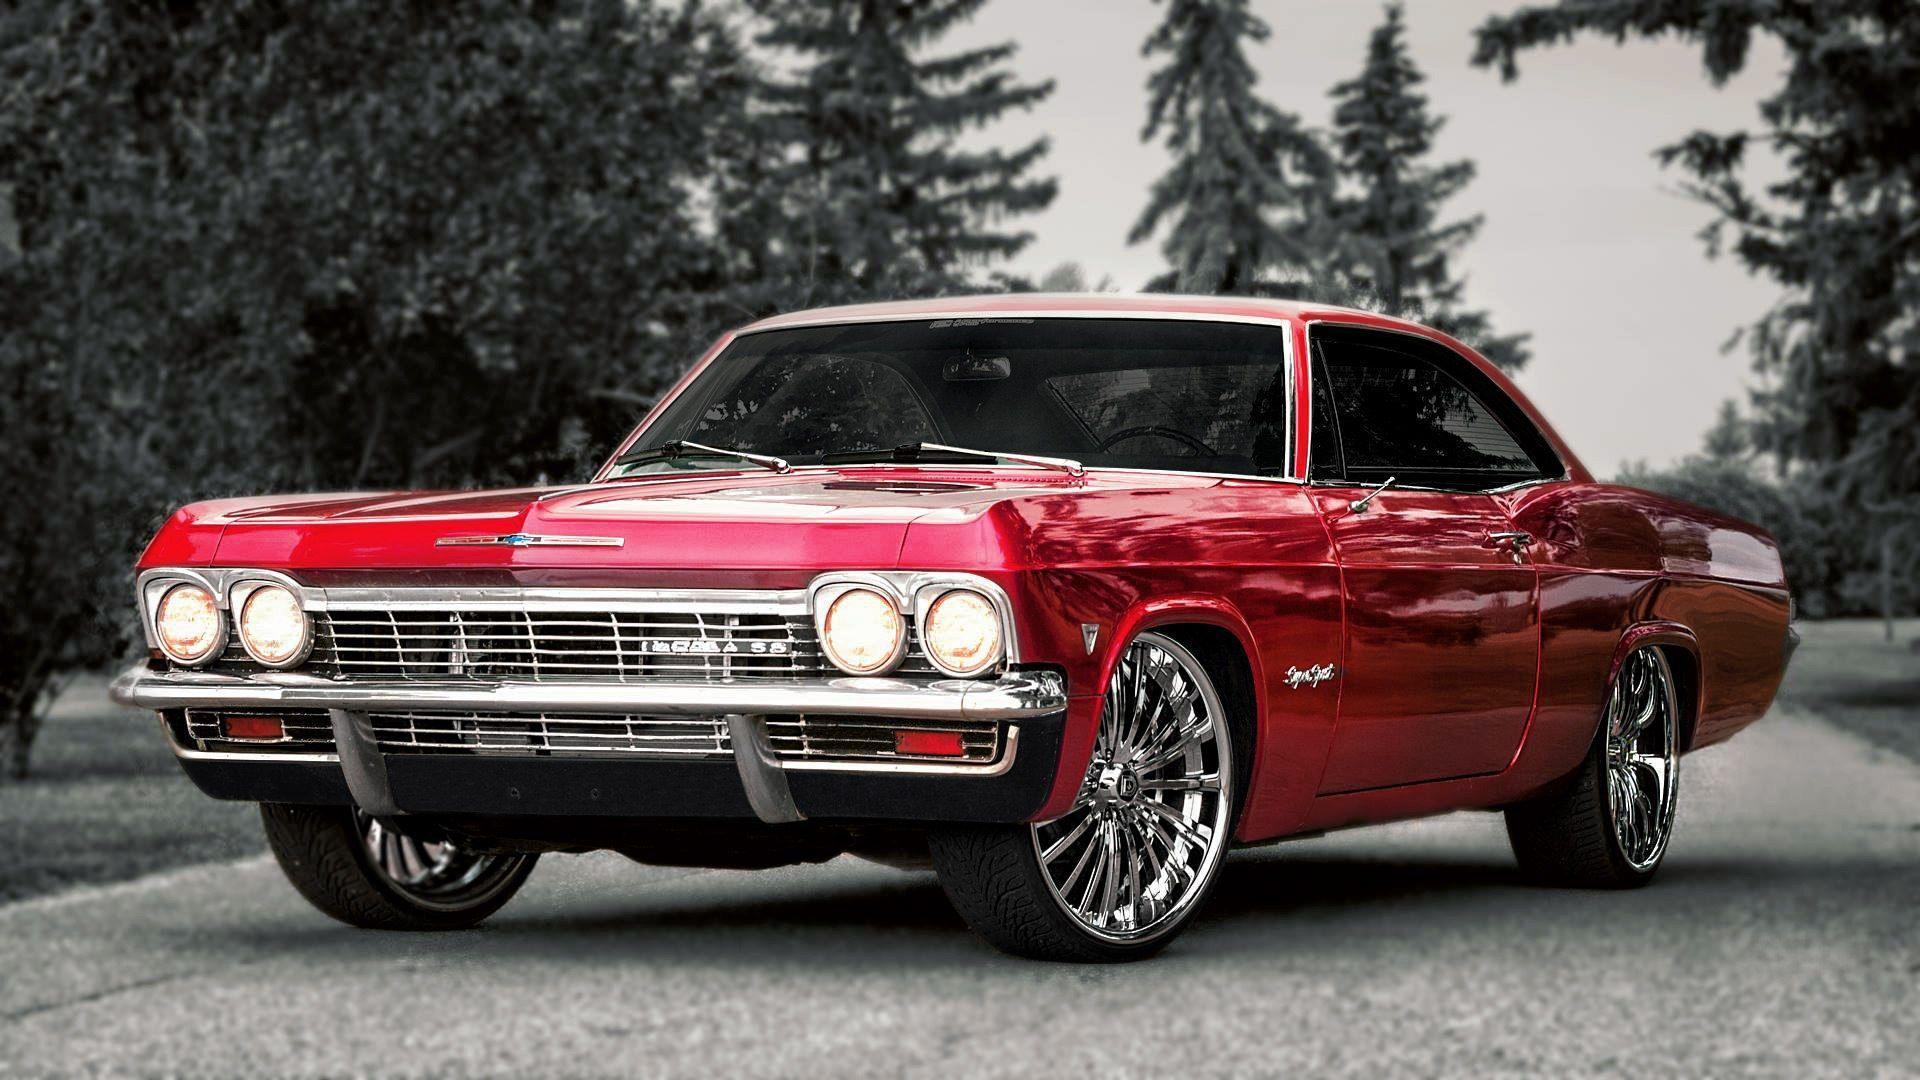 The classical model of Chevrolet Impala SS wallpapers and image